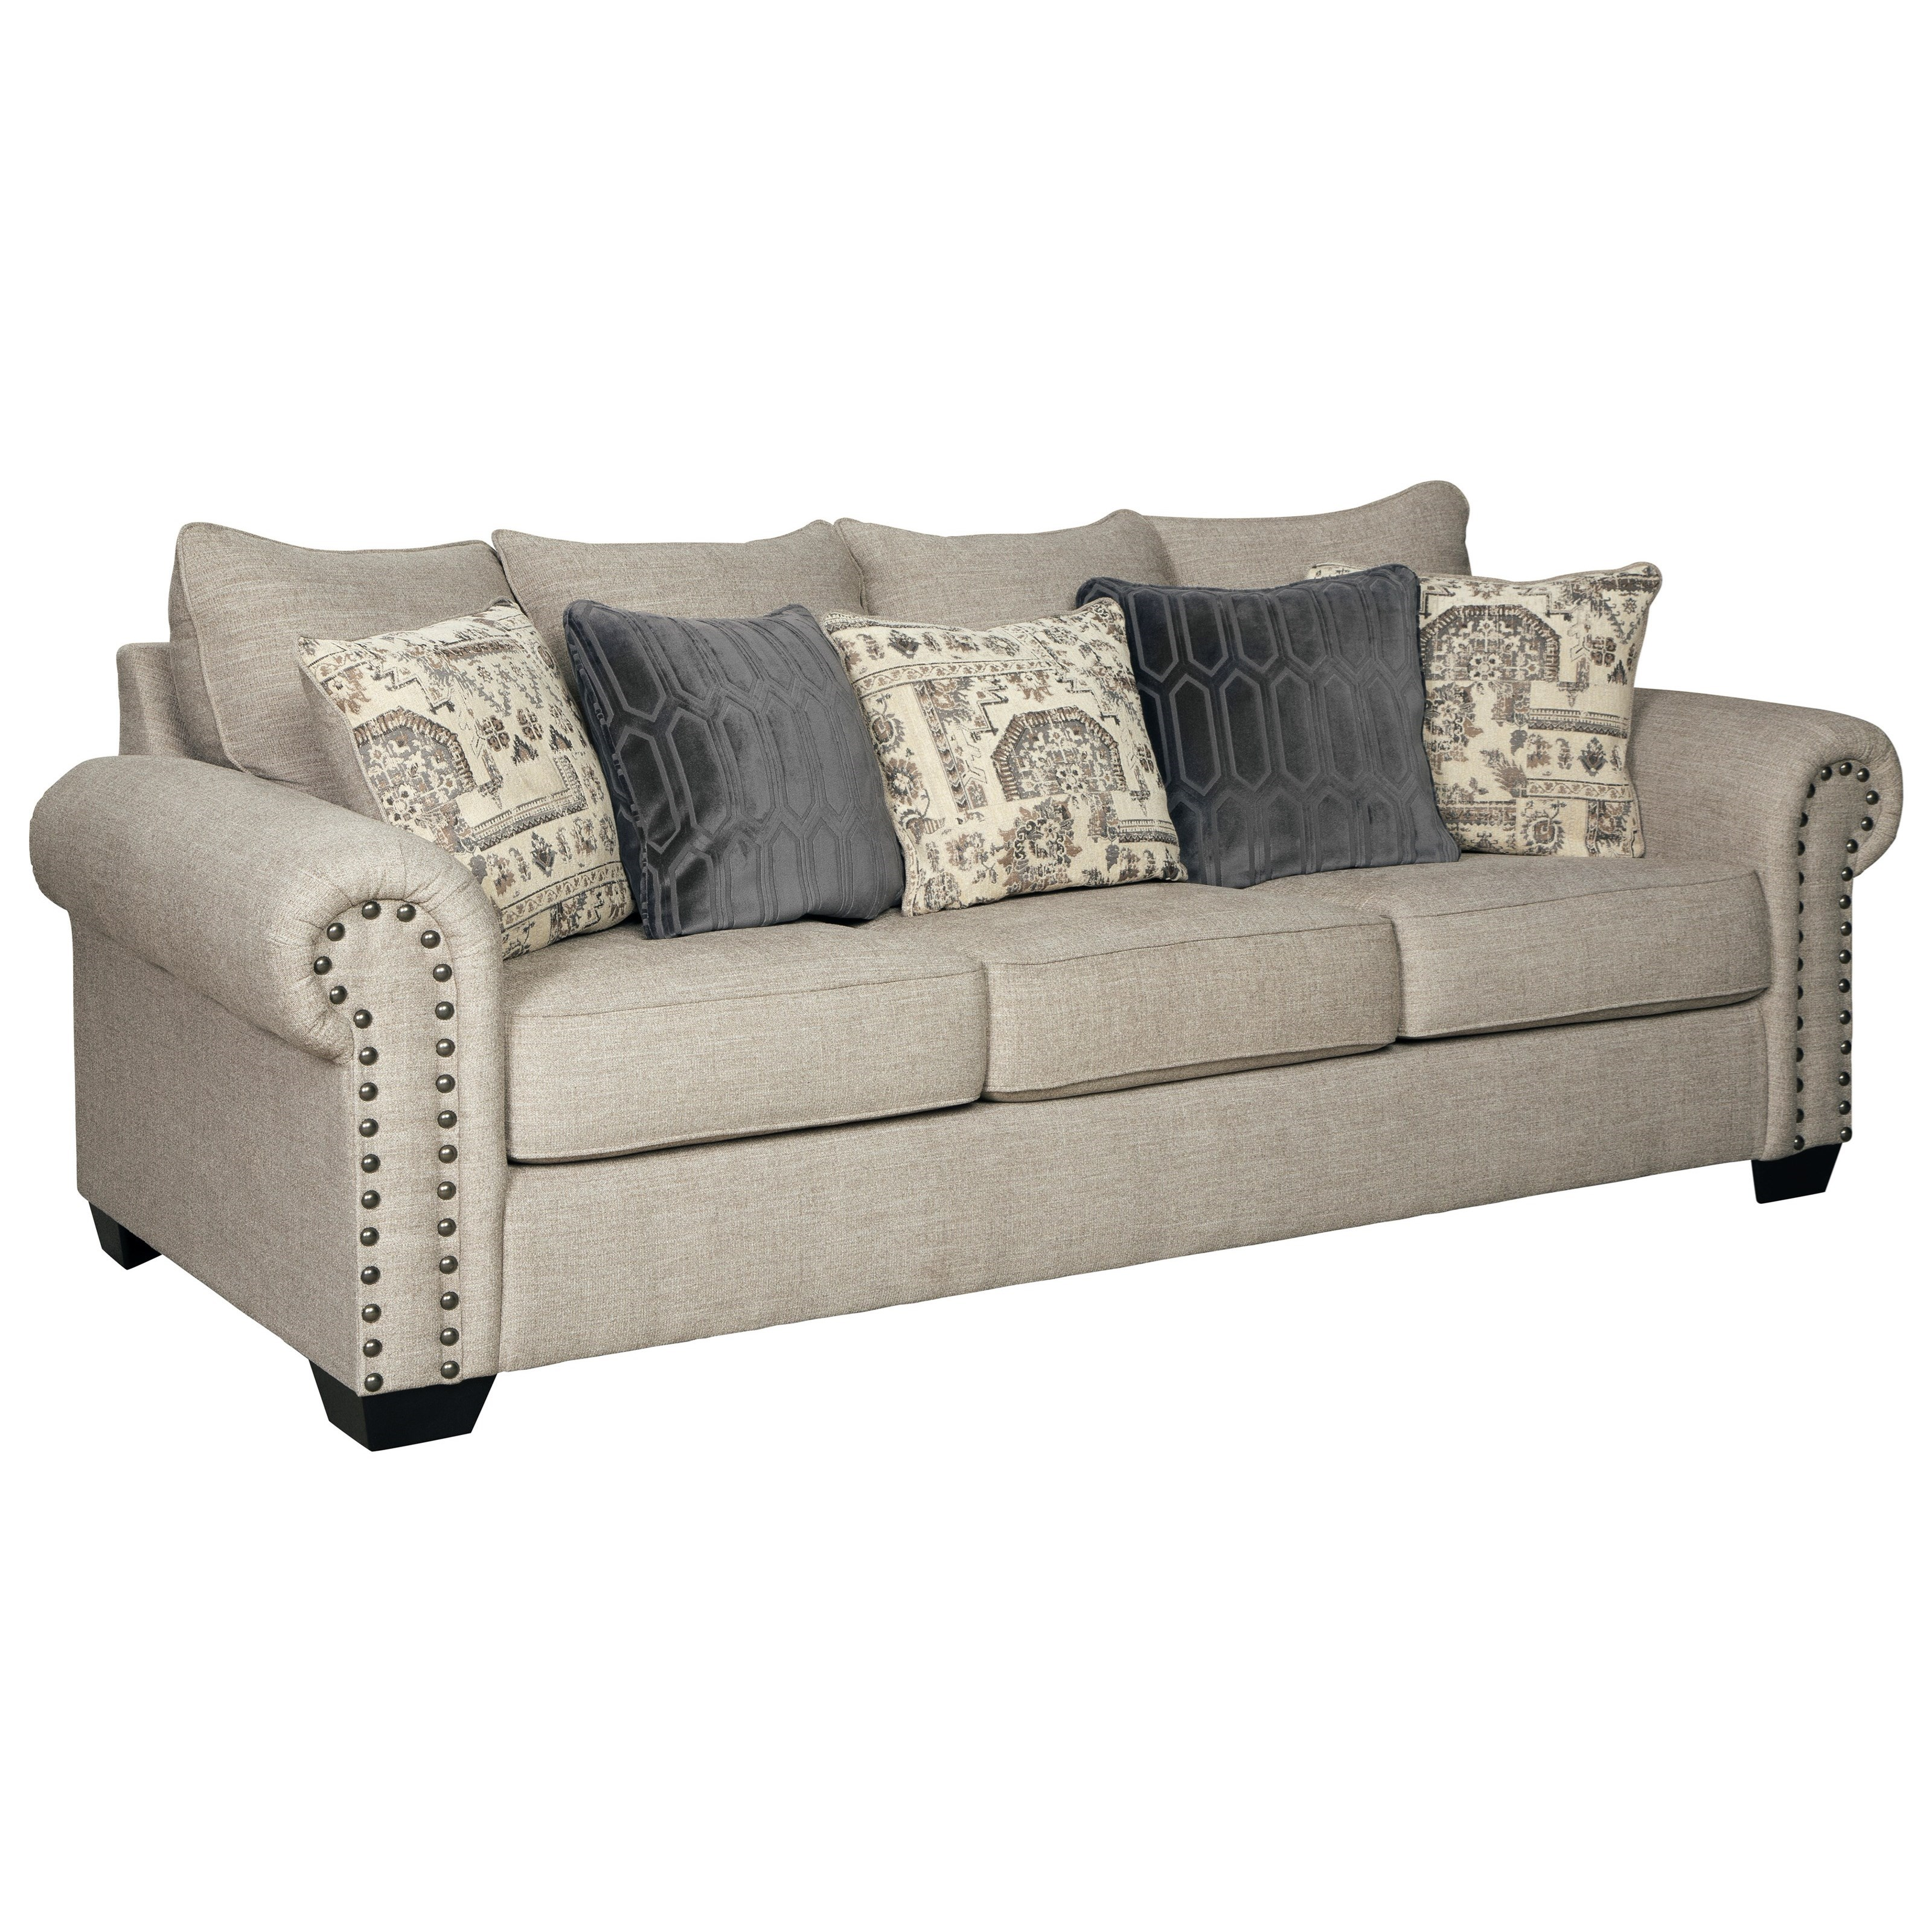 Zarina Sofa by Signature Design by Ashley at Northeast Factory Direct